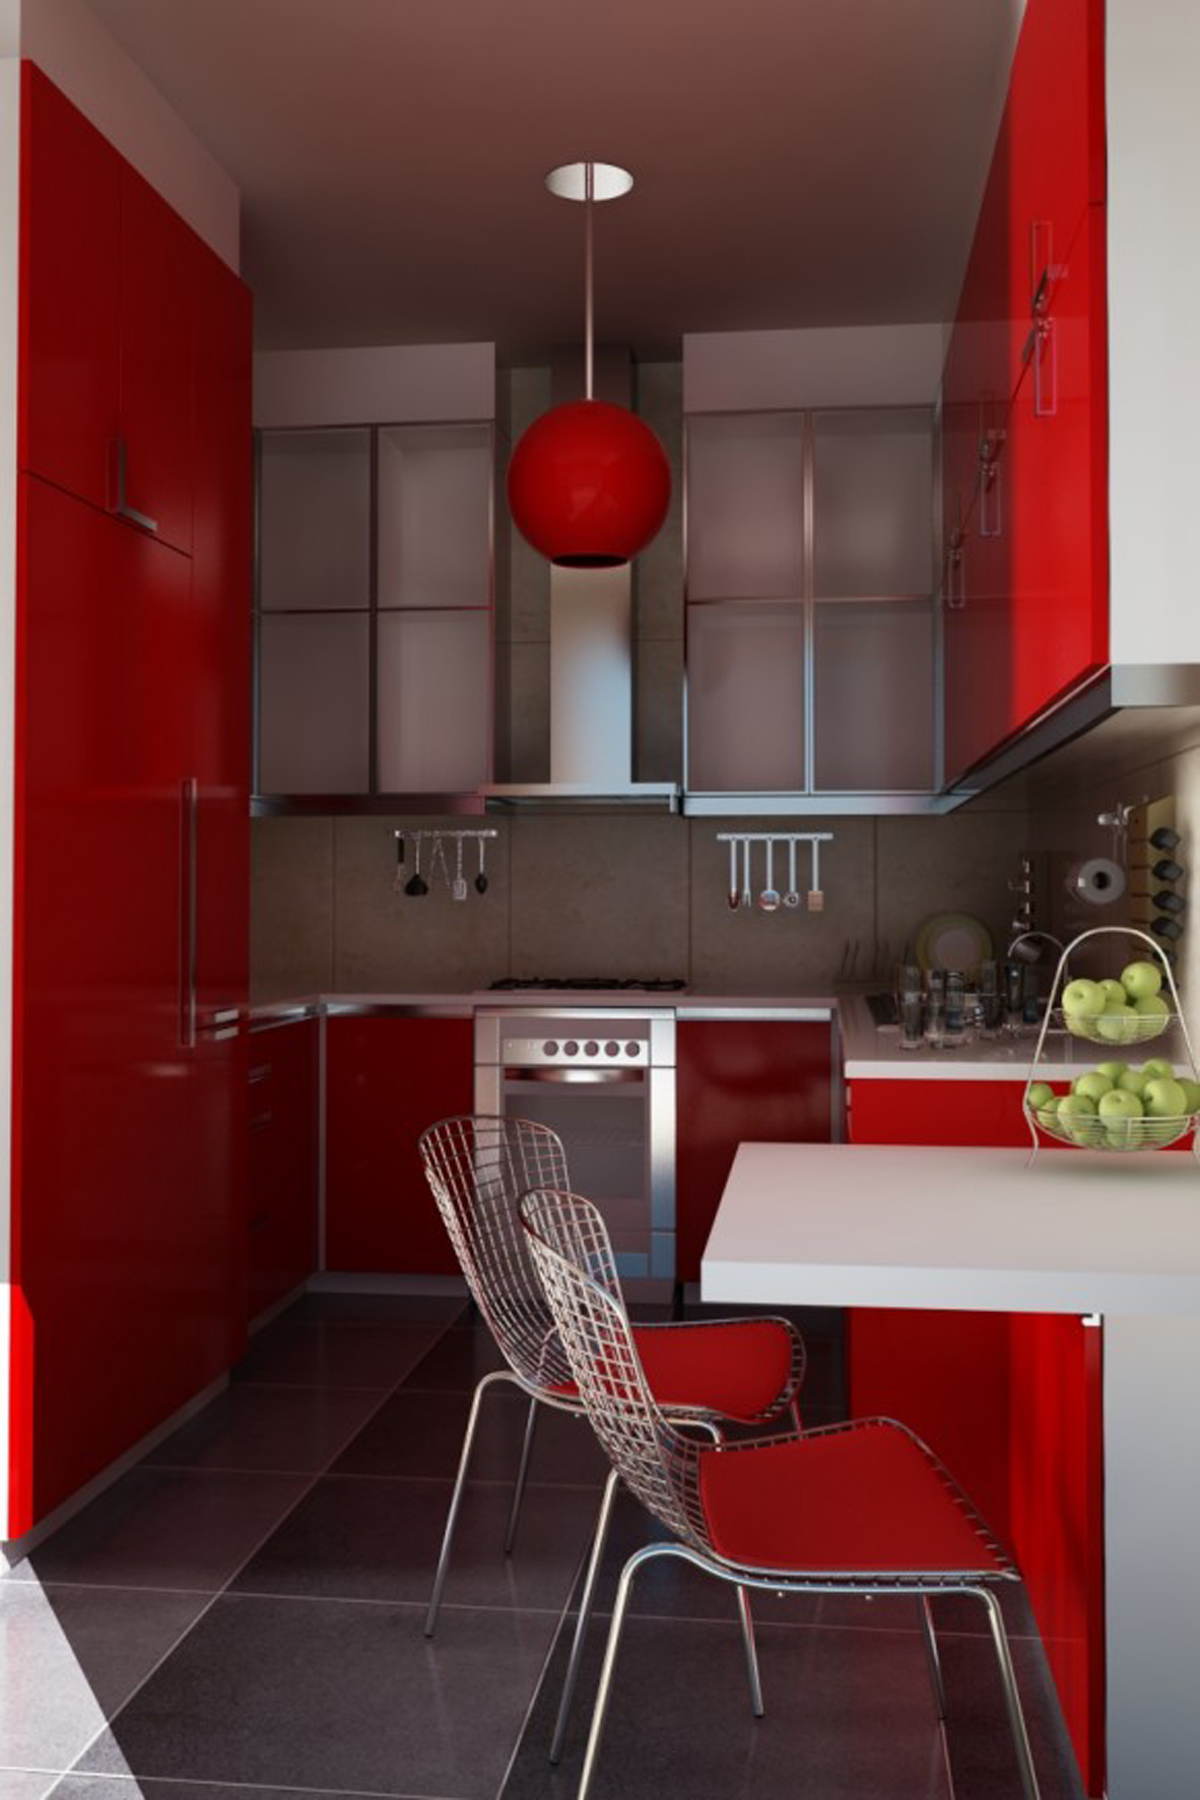 Super Cool Kitchen Designs with Stylish Layouts Plans - Iroonie.